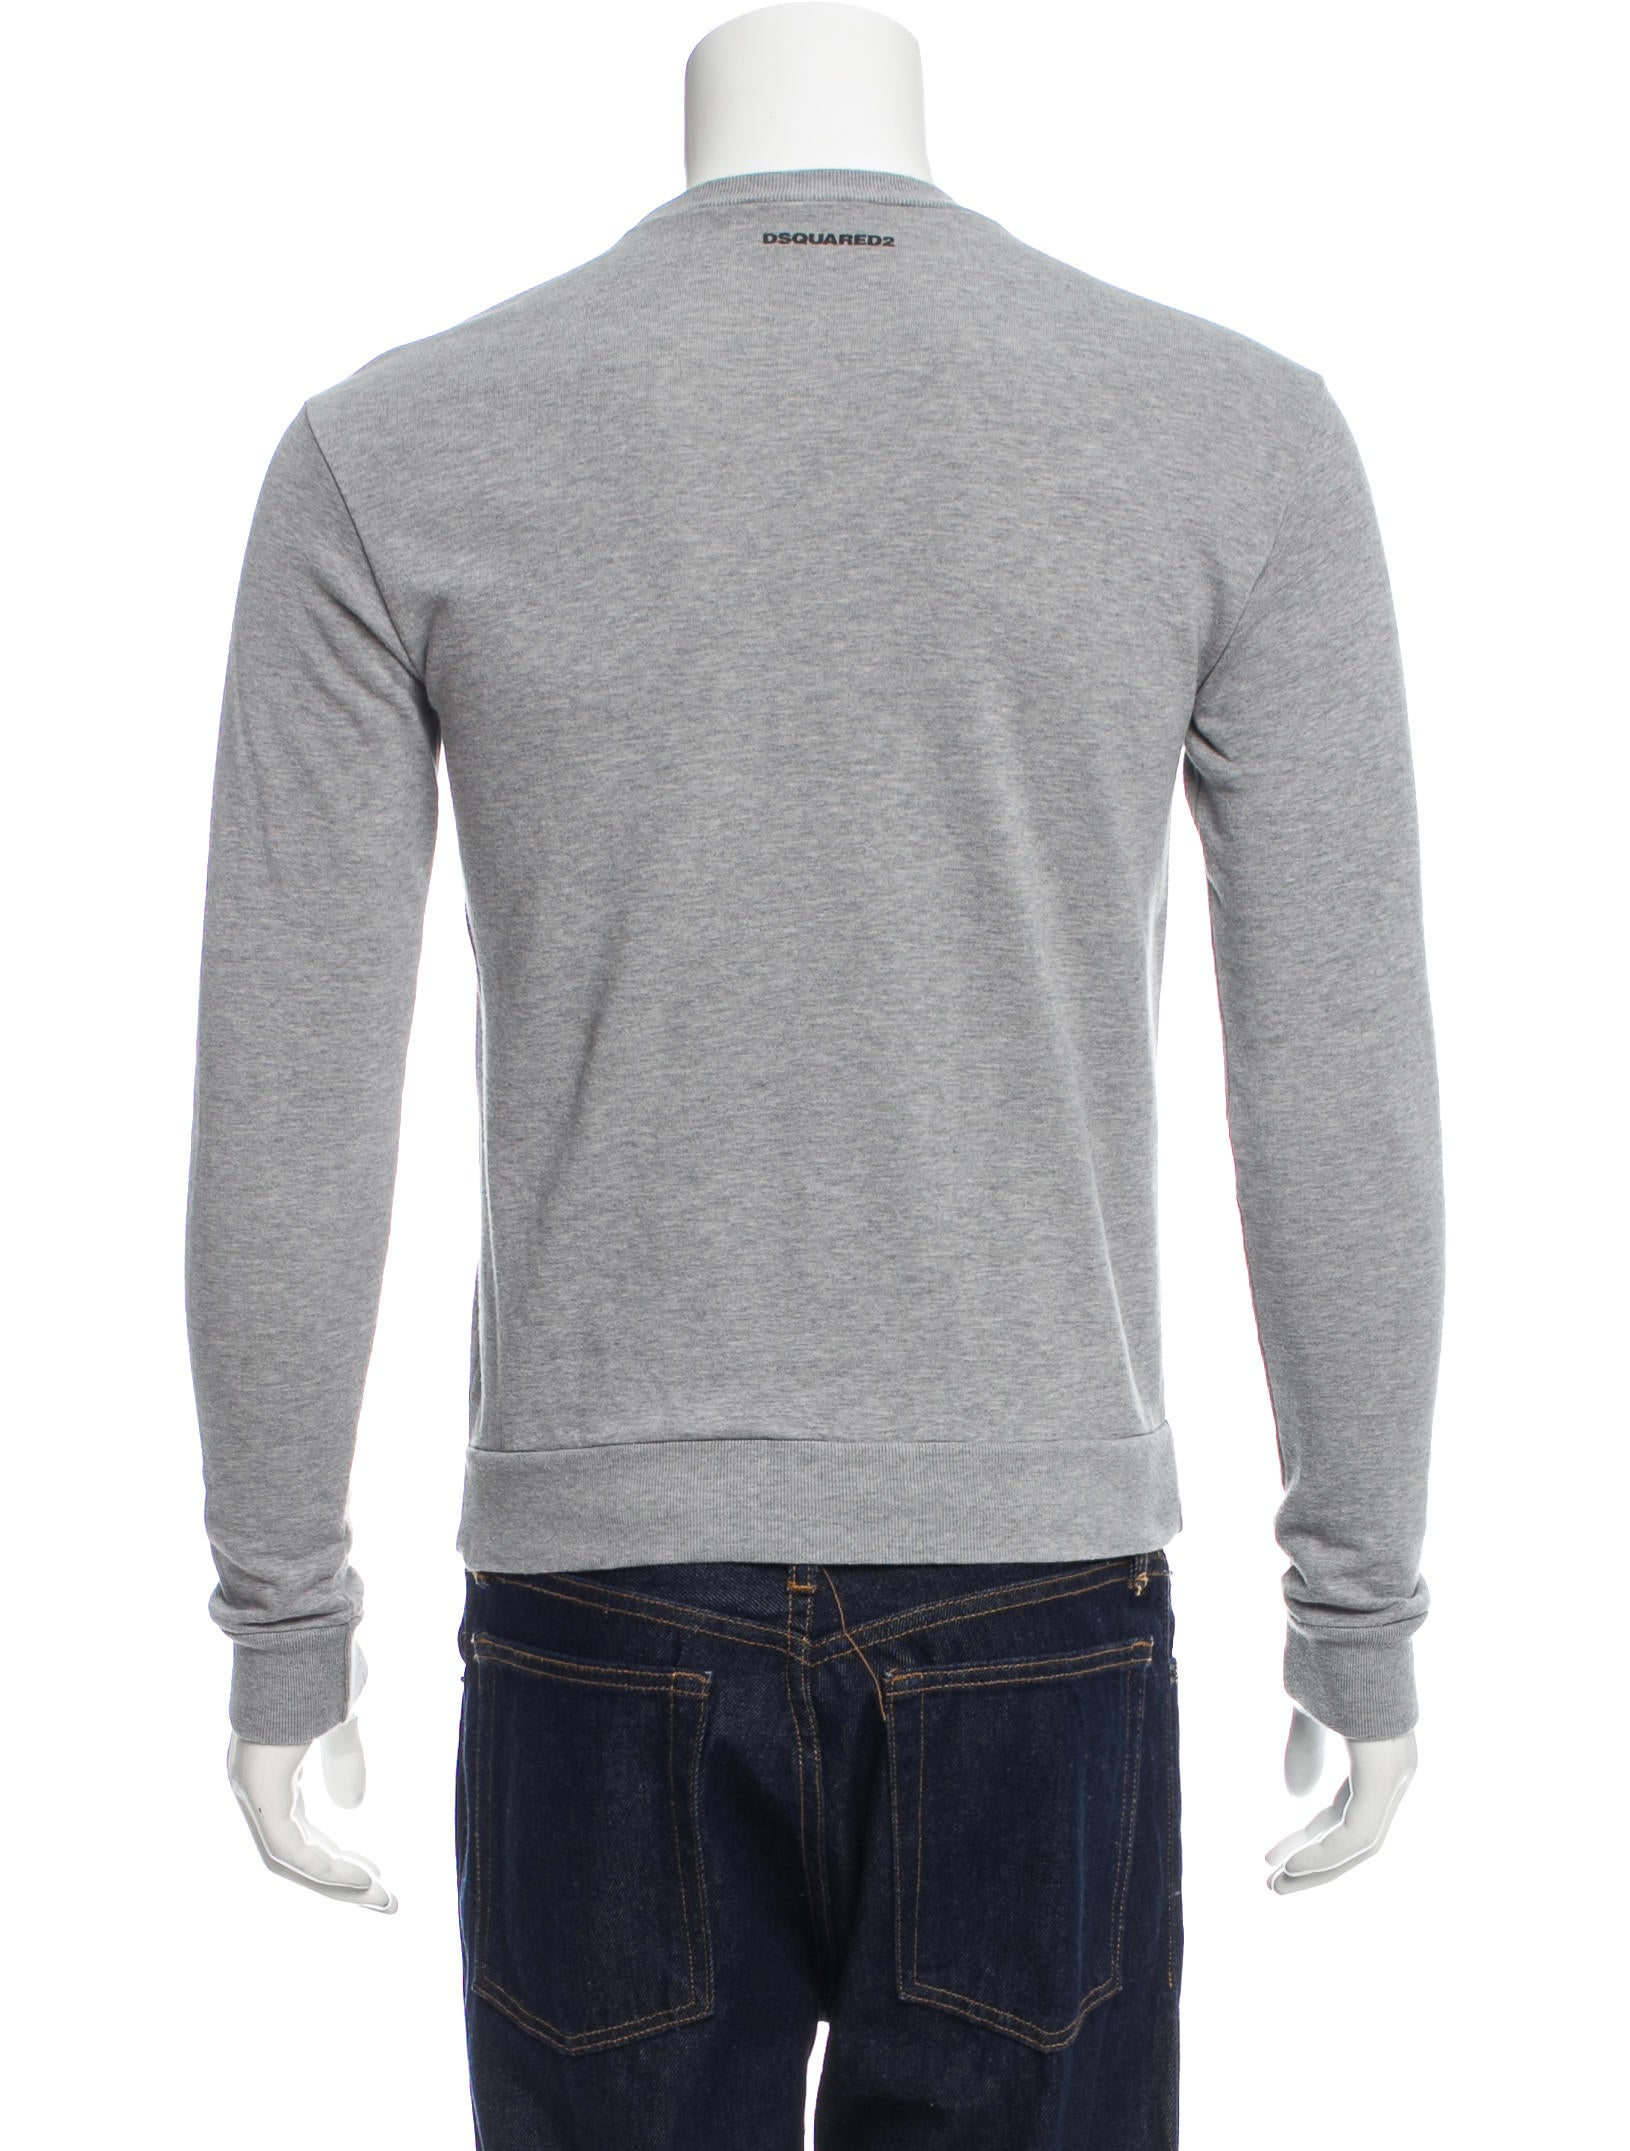 Shop Old Navy's Graphic Crew-Neck Sweater for Men: Rib-knit crew neck.,Long sleeves, with rib-knit cuffs.,Intarsia graphic across front.,Rib-knit hem.,Soft, thick cotton-blend yarn.